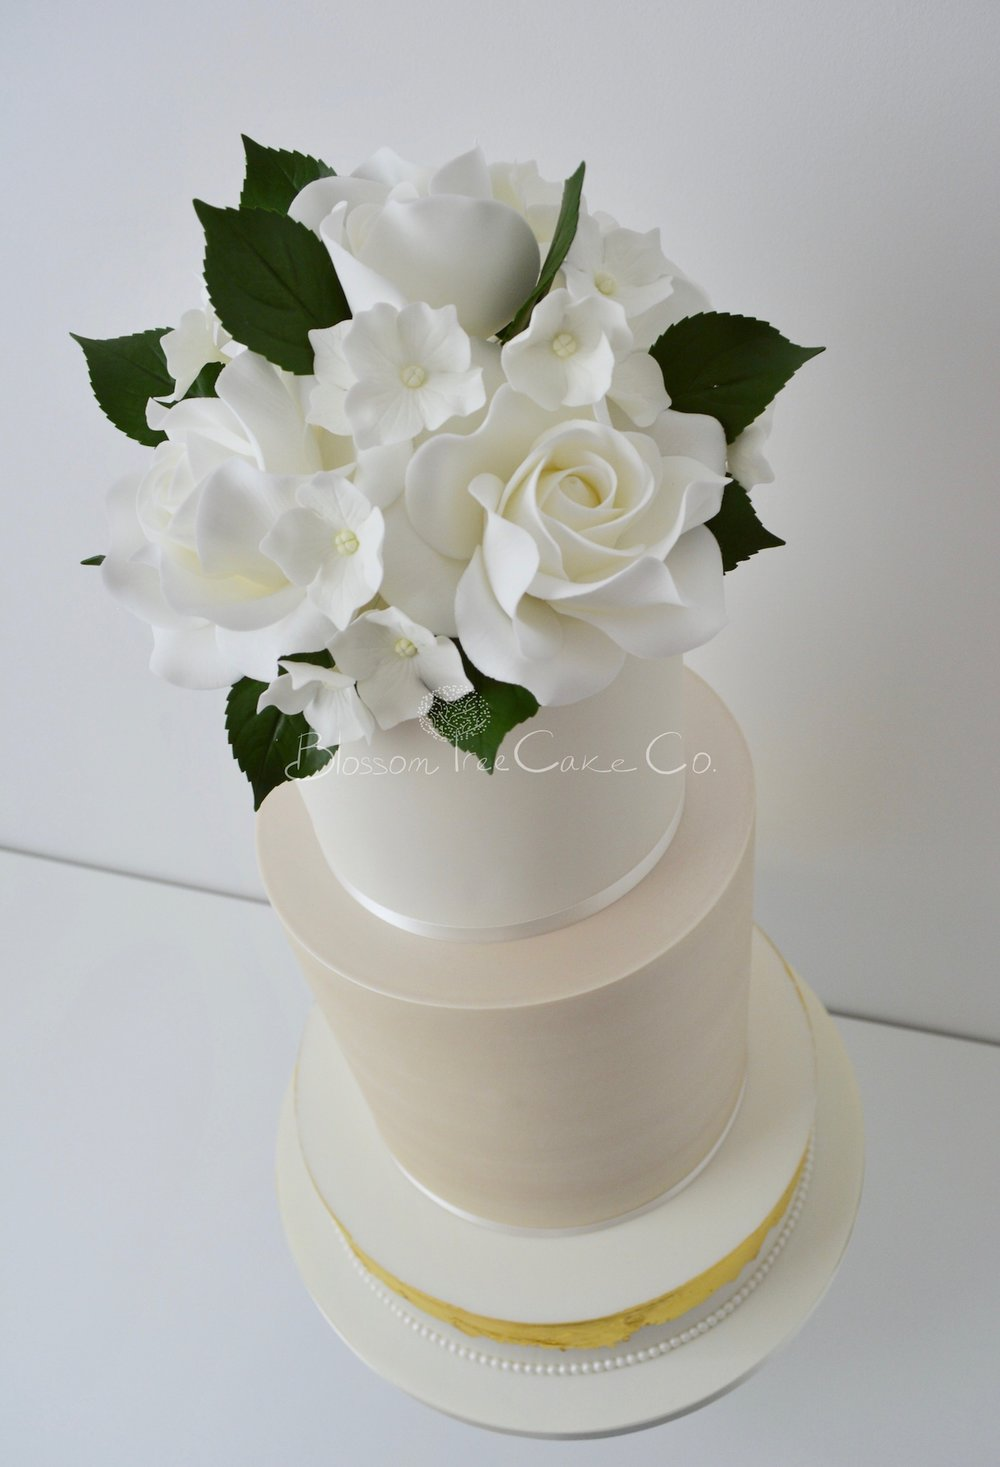 Champagne and White Roses wedding cake by Blossom Tree Cake Company Harrogate North Yorkshire